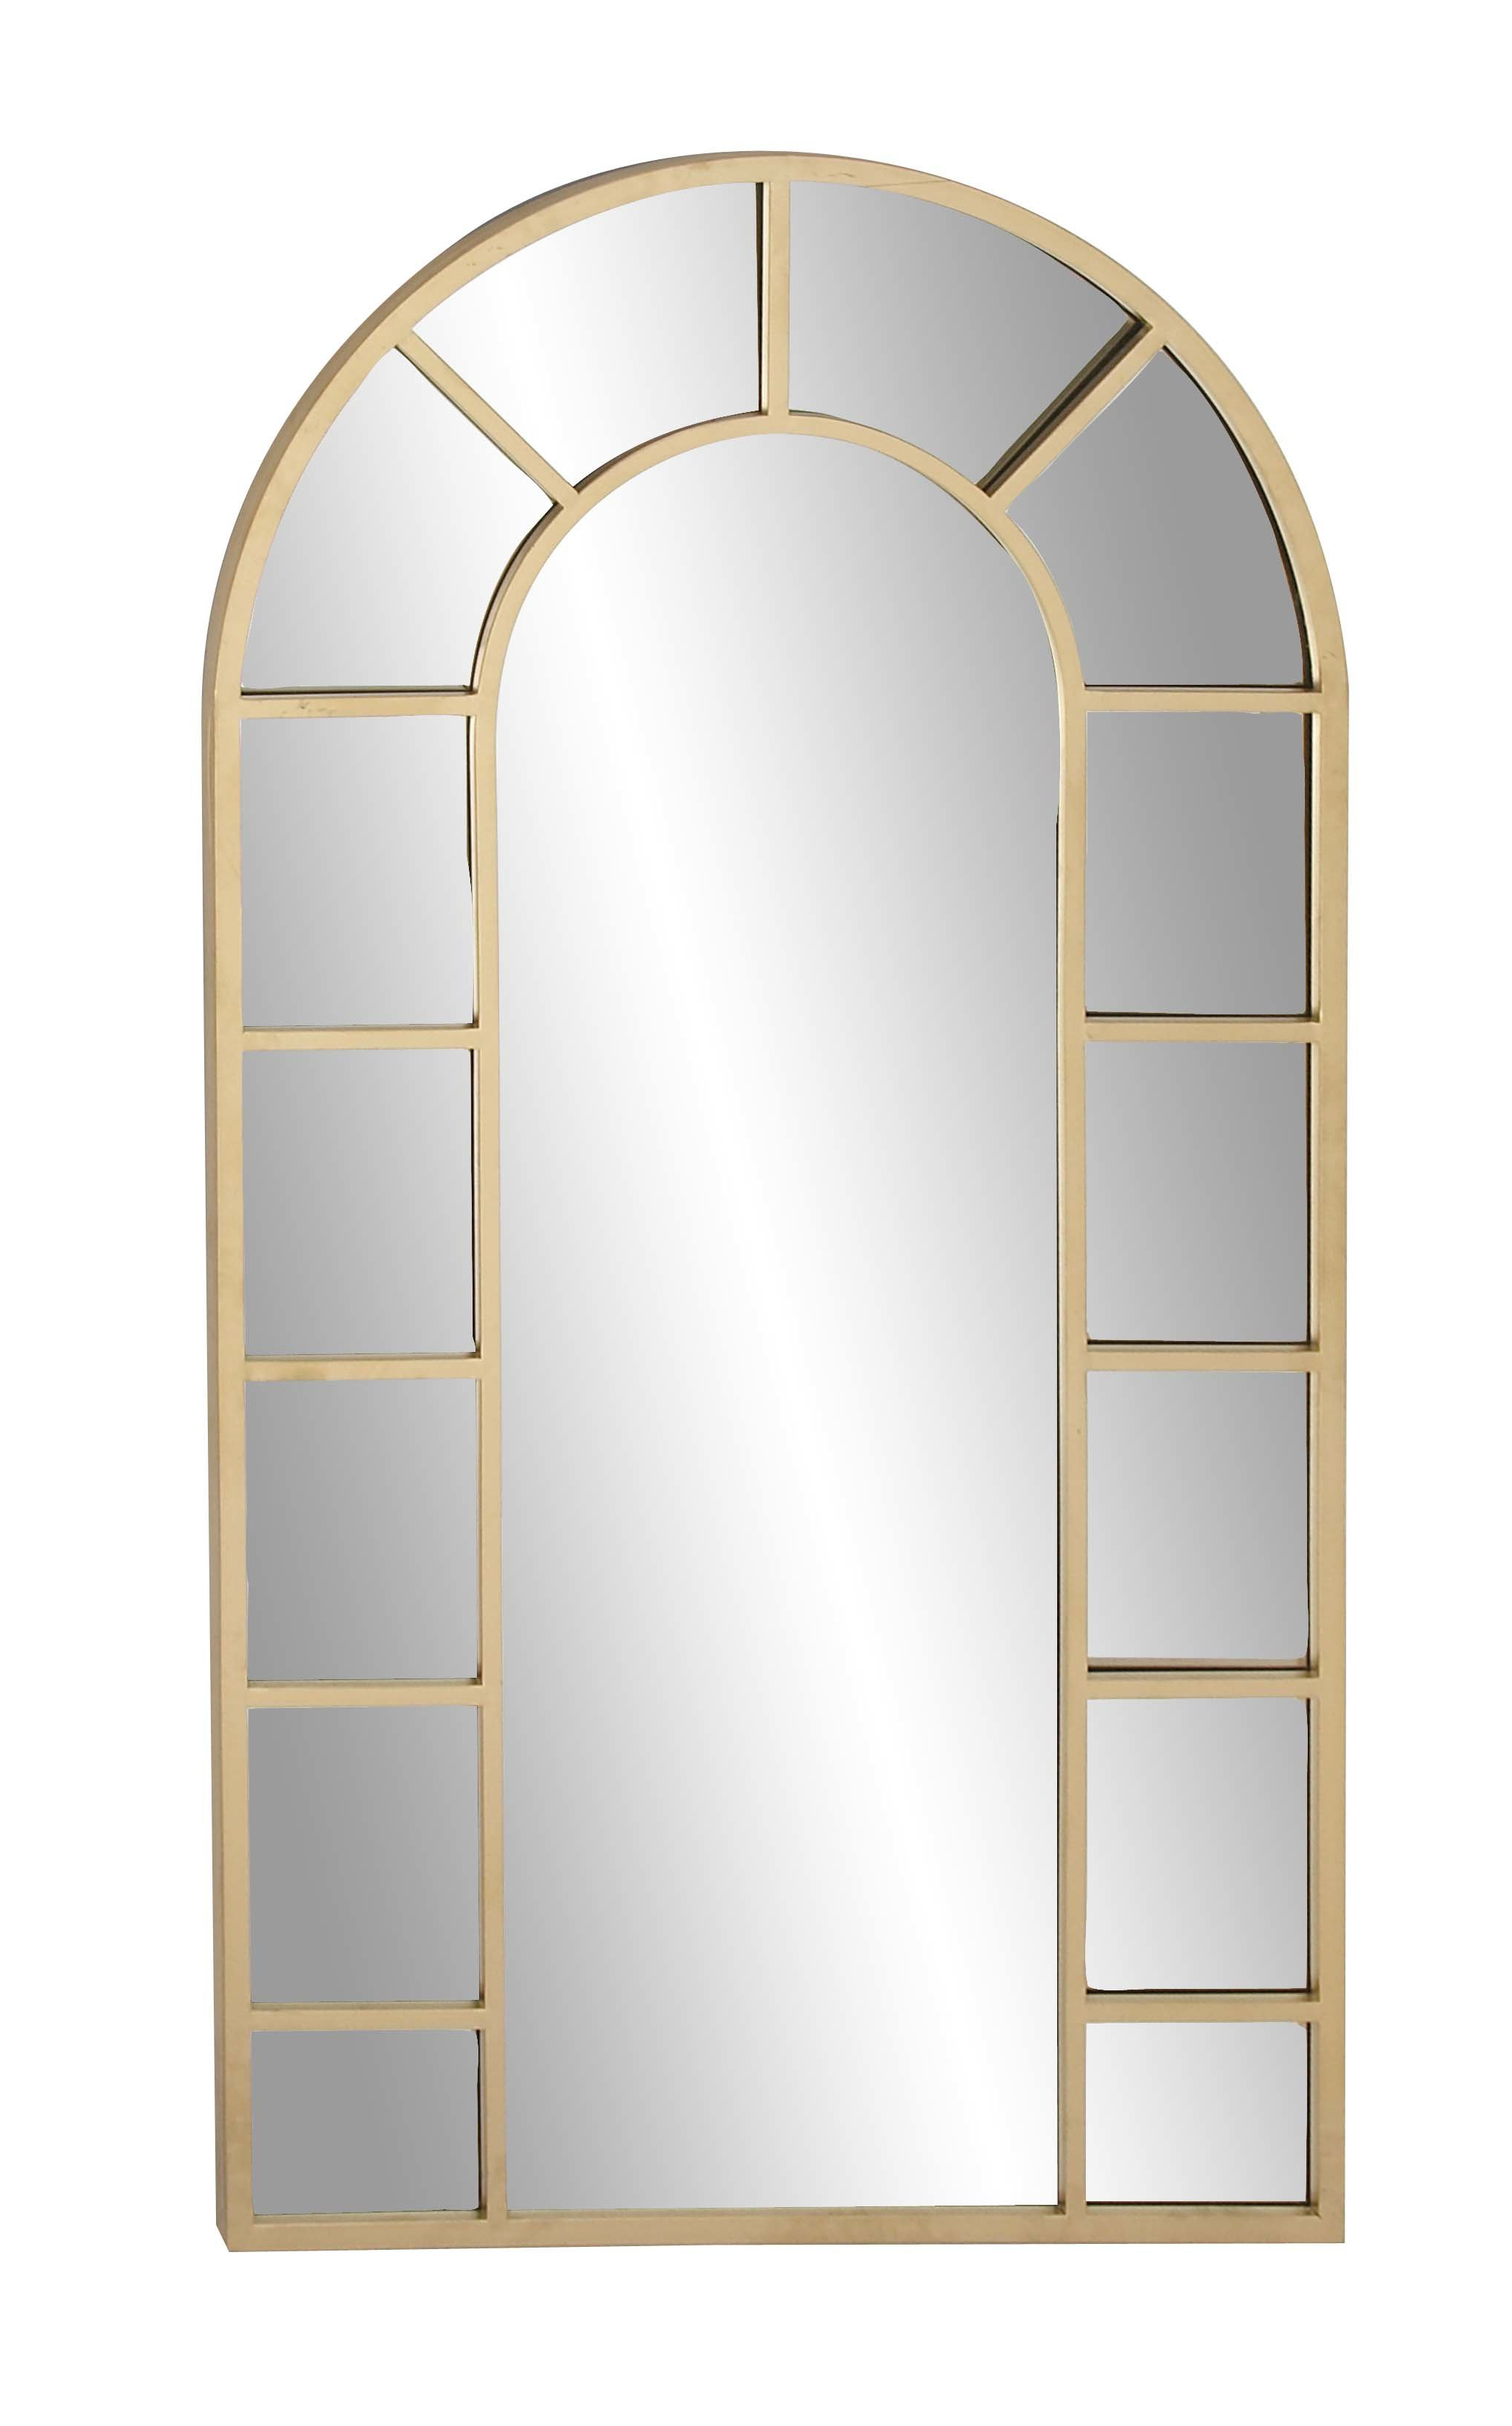 Yarger Modern & Contemporary Accent Mirror Throughout Most Popular Tellier Accent Wall Mirrors (View 20 of 20)